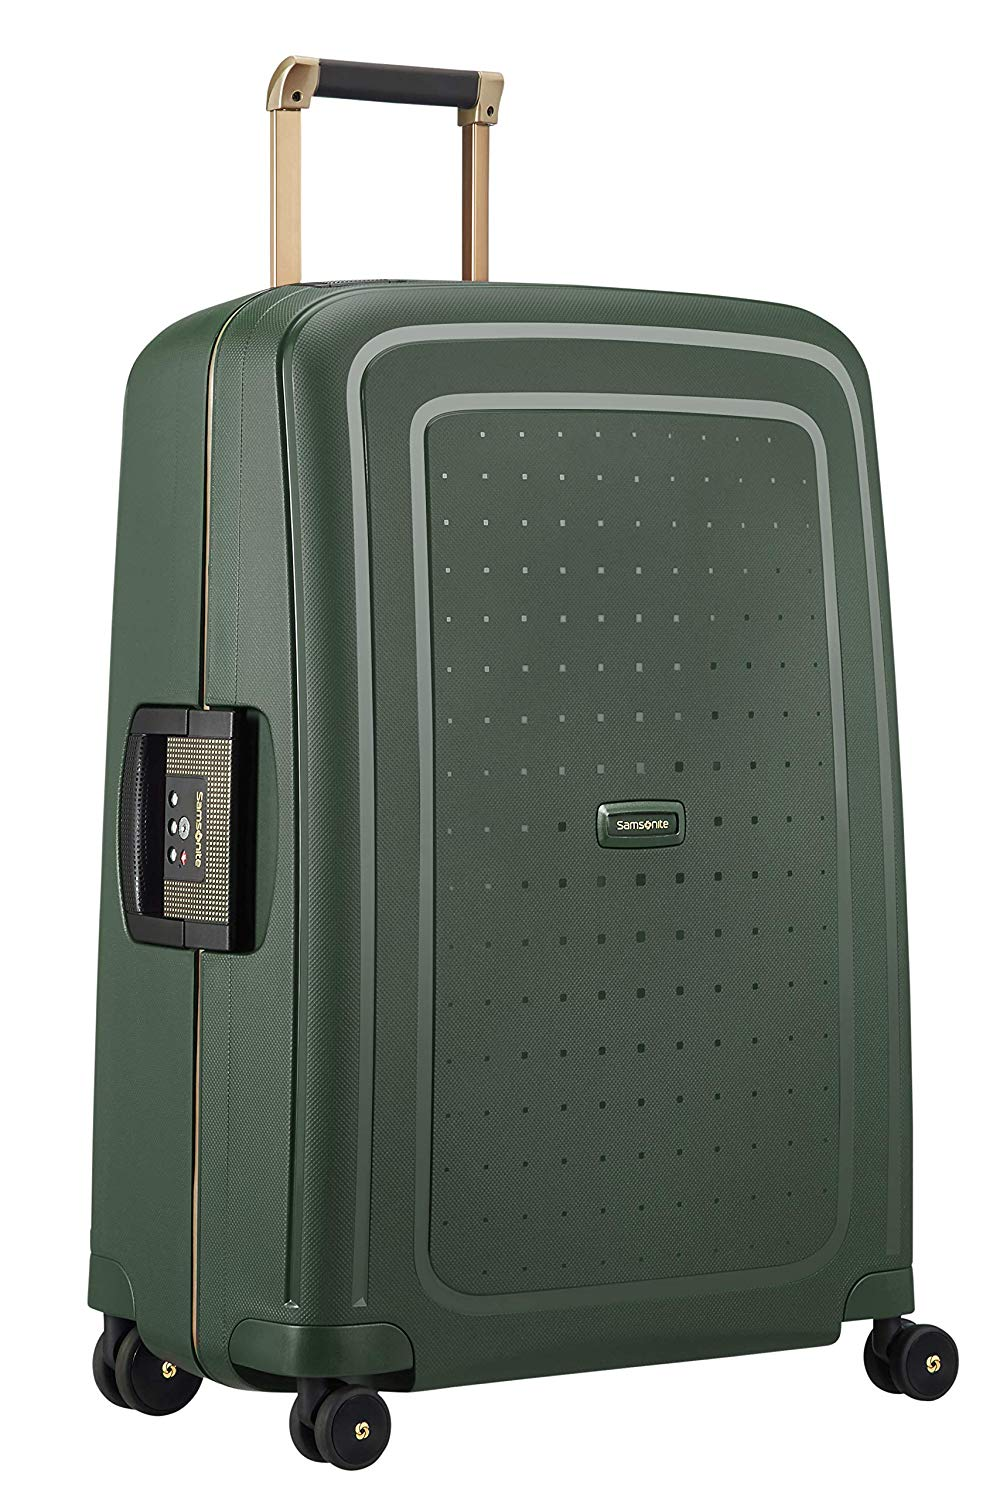 SAMSONITE S'Cure DLX Spinner 69 Koffer 69 cm, 79 L, Dark Green Gold Deluscious